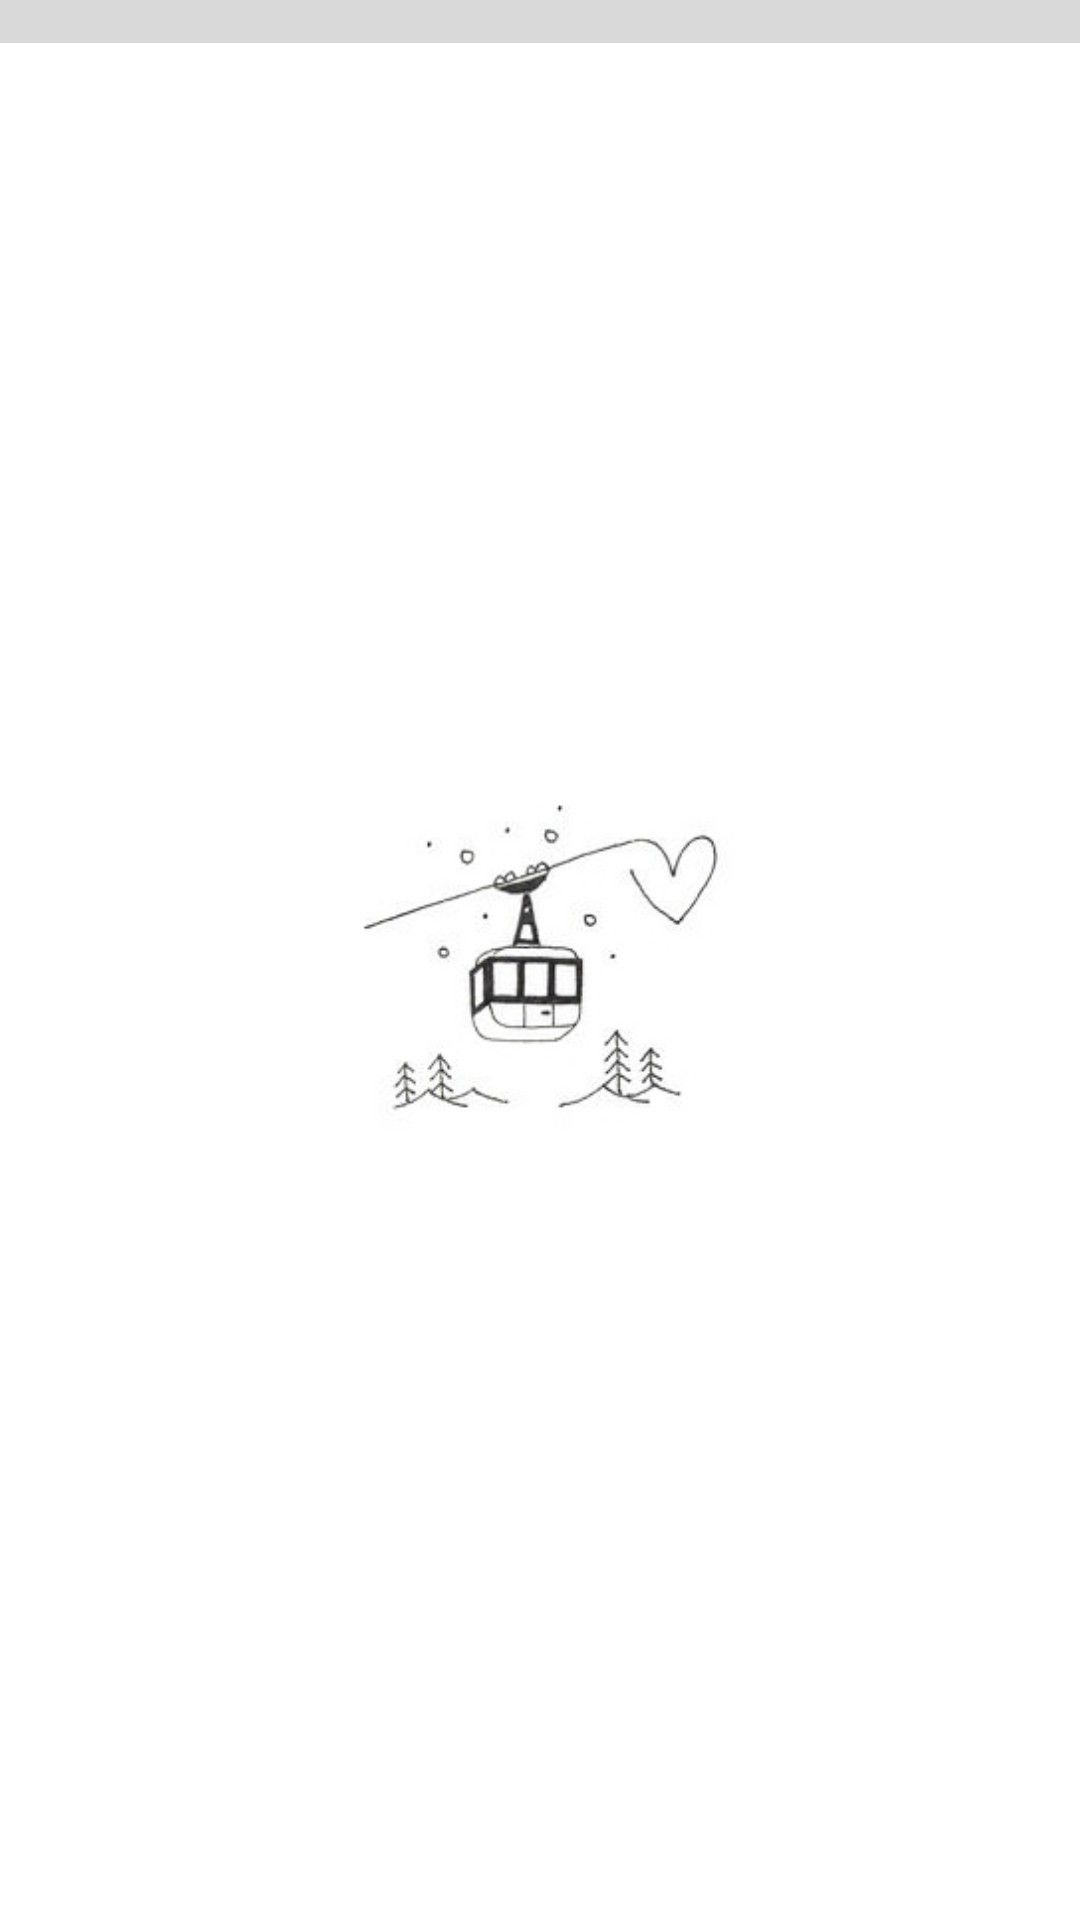 Cute Gunna Try And Draw This Later Cute Drawings Small Drawings Drawings